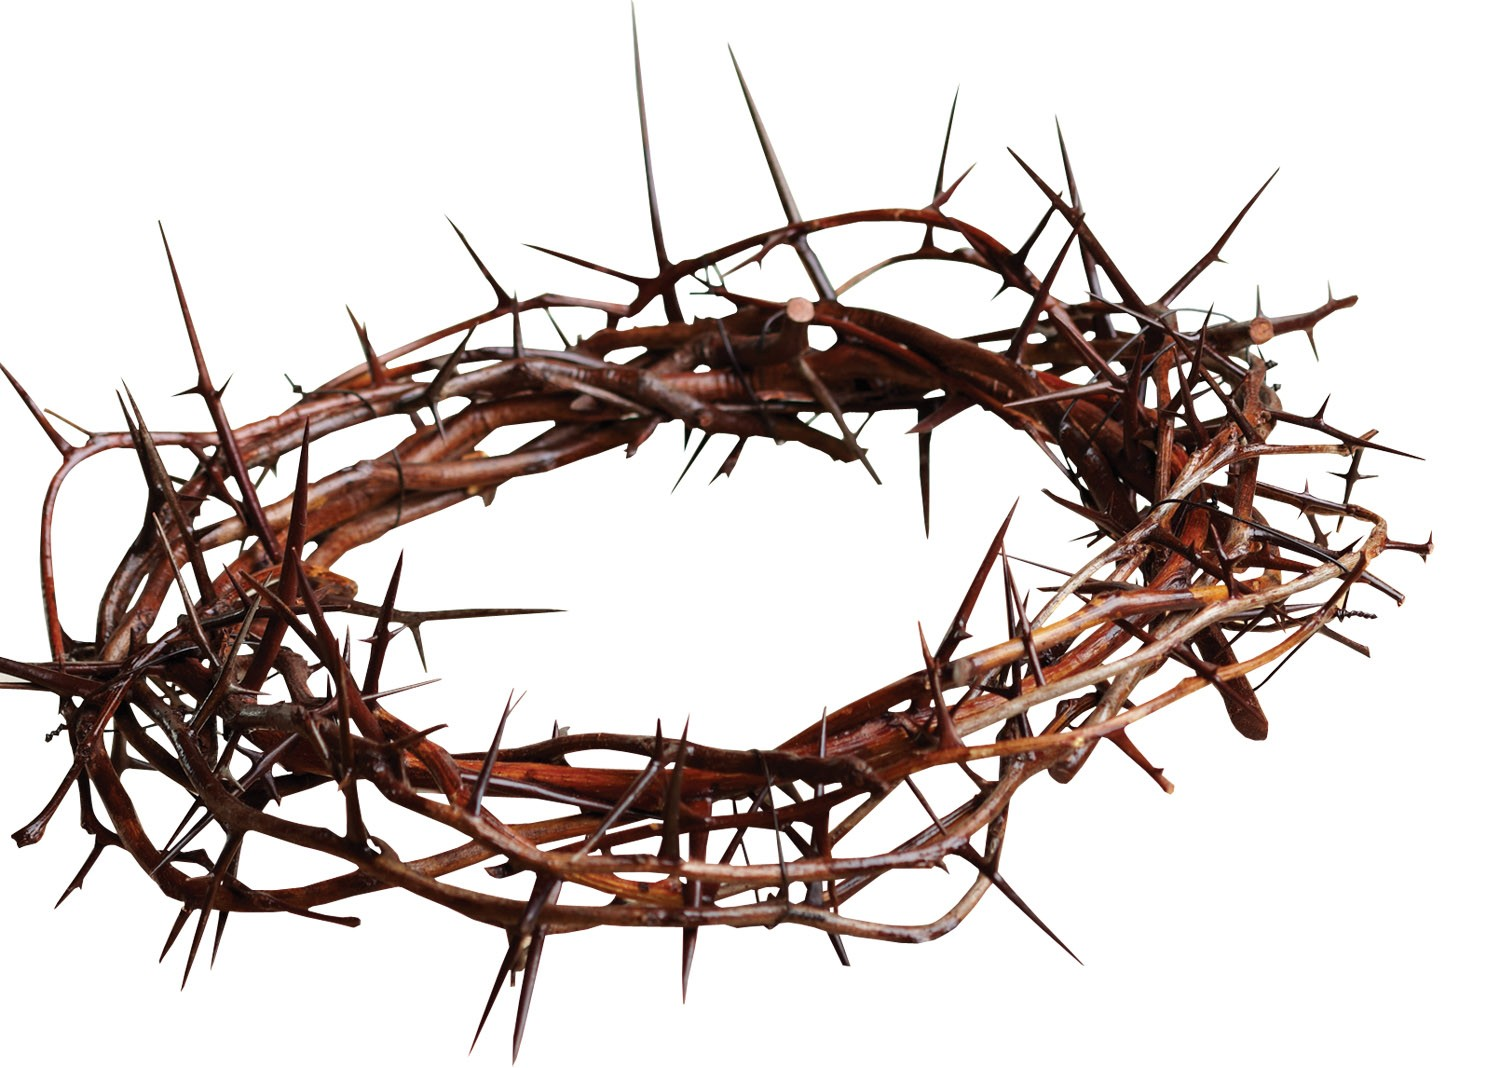 Thorns Free Christian Twitter Background C28com - Clipart library - Crown  Of Thorns PNG HD - Free Christian PNG HD